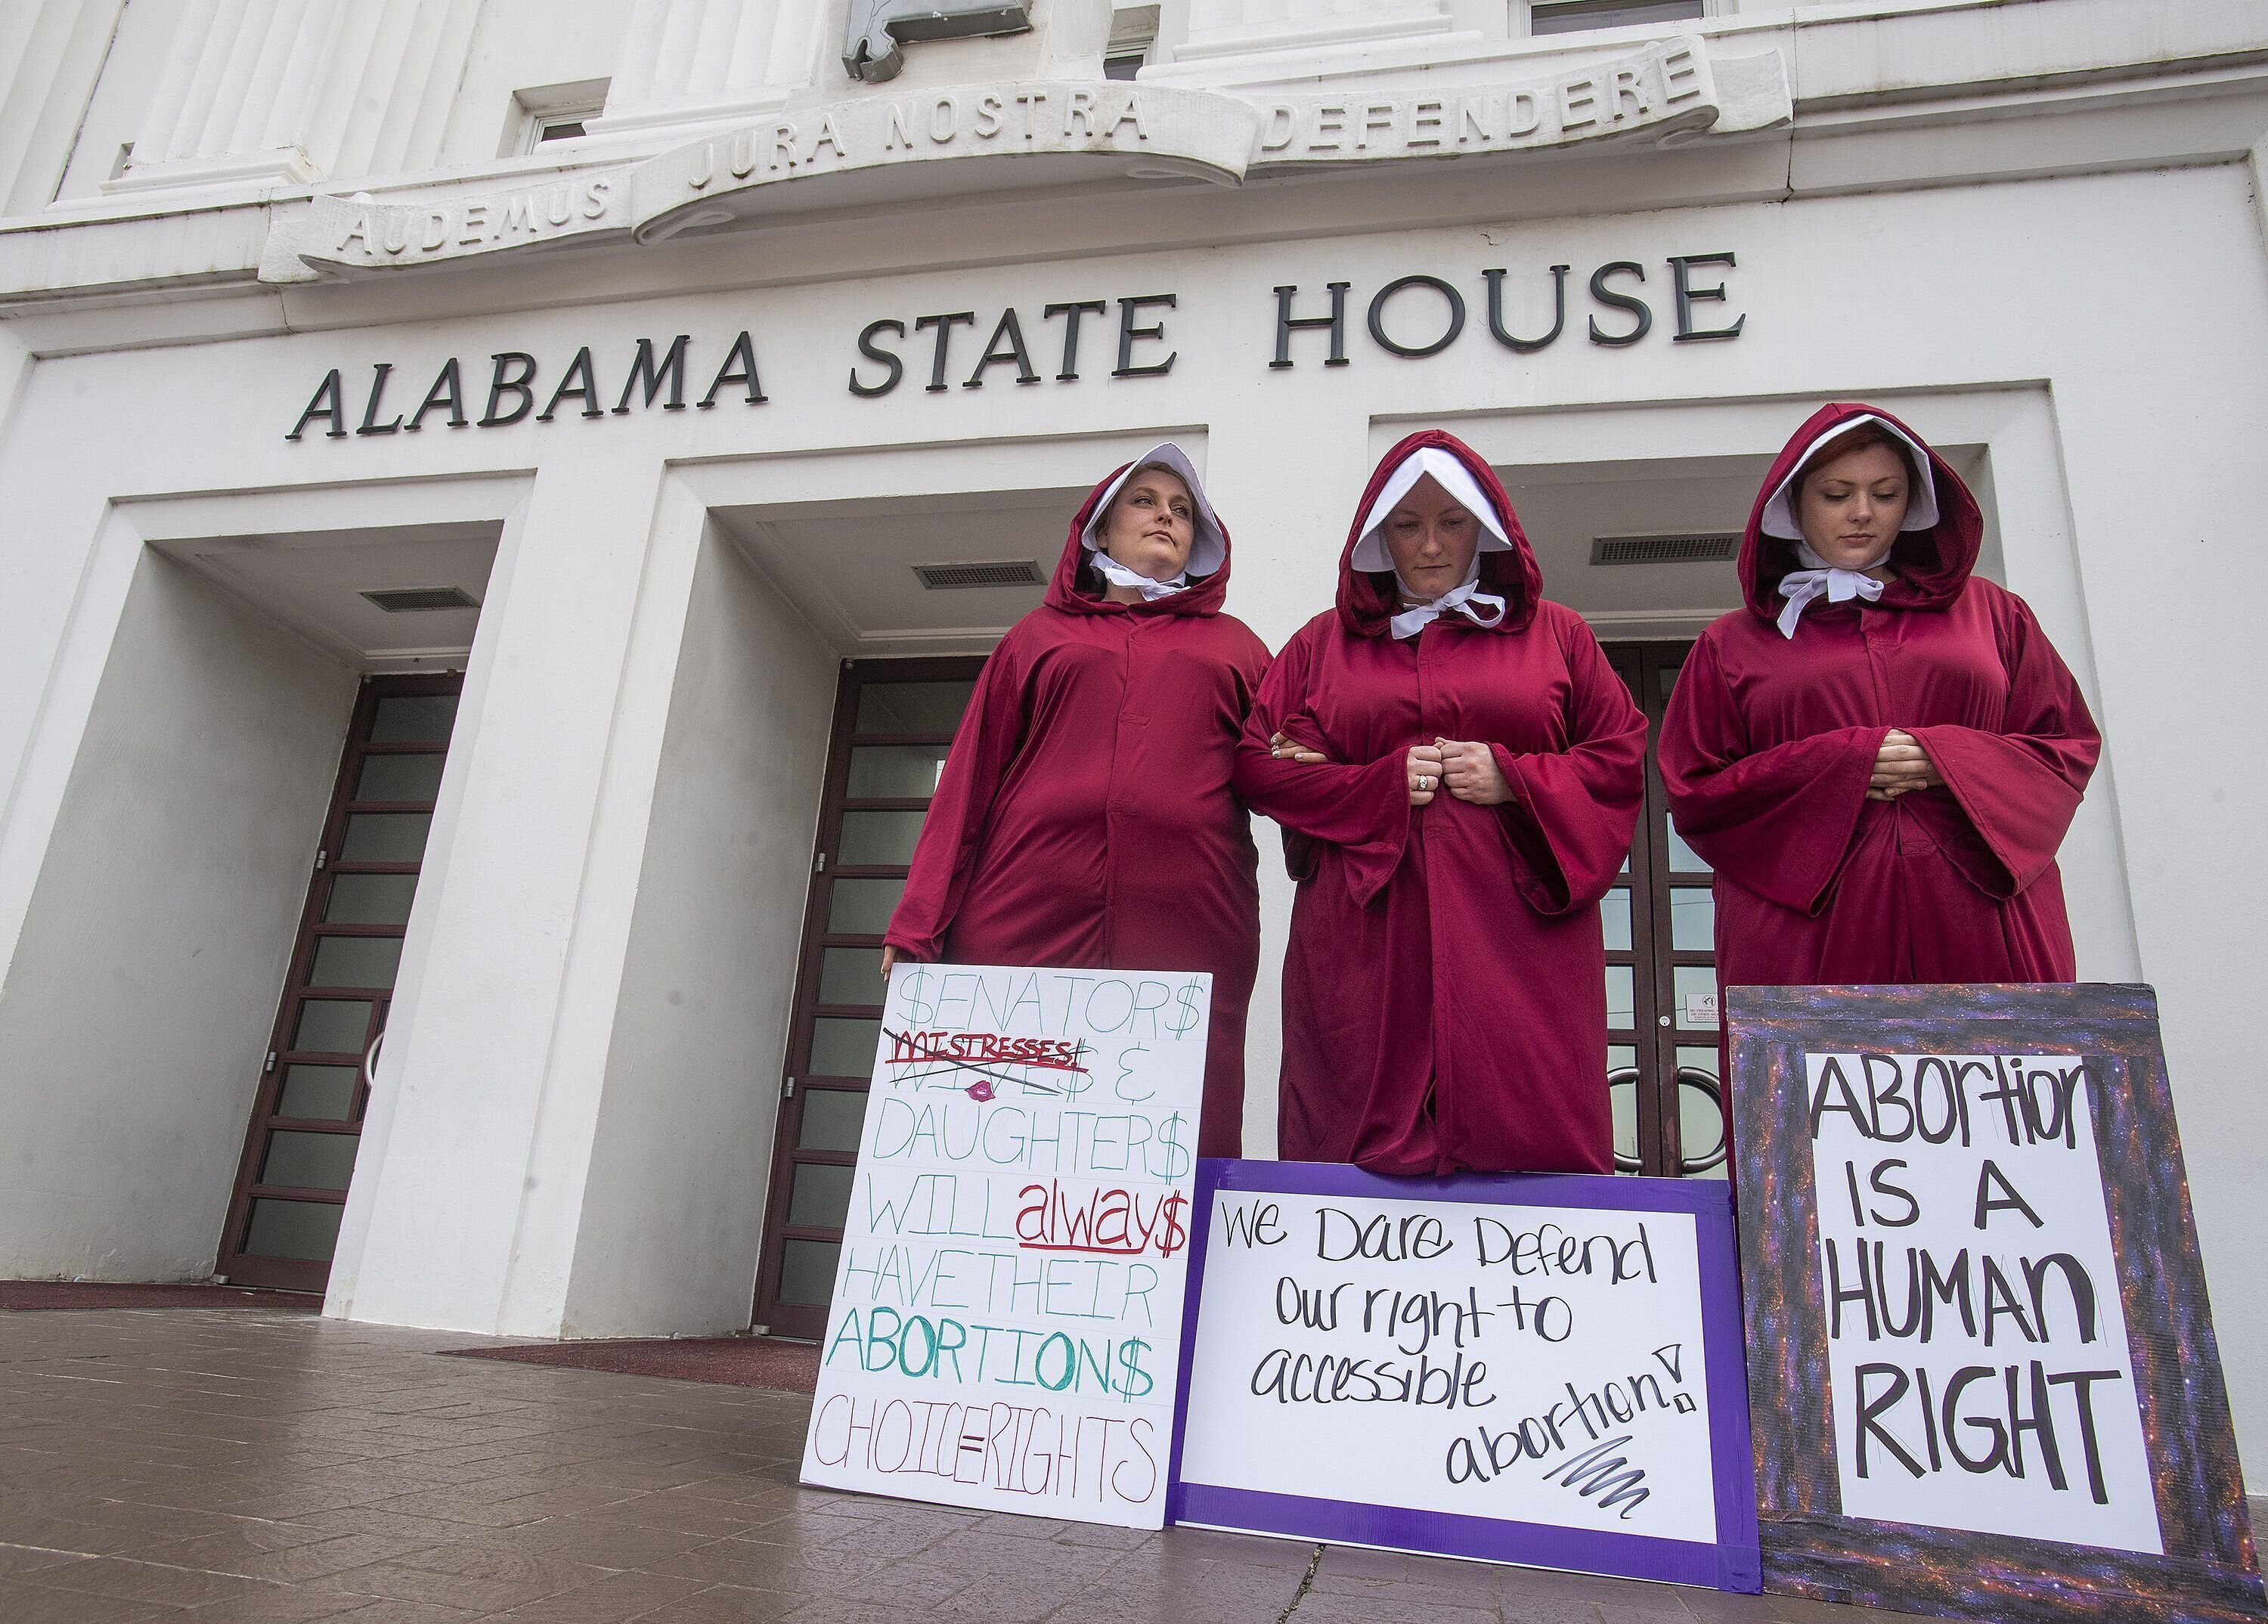 Bianca Cameron-Schwiesow, from left,Kari Crowe and Margeaux Hardline, dressed as handmaids, take part in a protest against HB314, known as the abortion ban bill, at the Alabama Statehouse in Montgomery, Ala., on Wednesday April 17, 2019. Protest04 (Photo by Mickey Welsh / Advertiser/USA Today Network/Sipa USA)